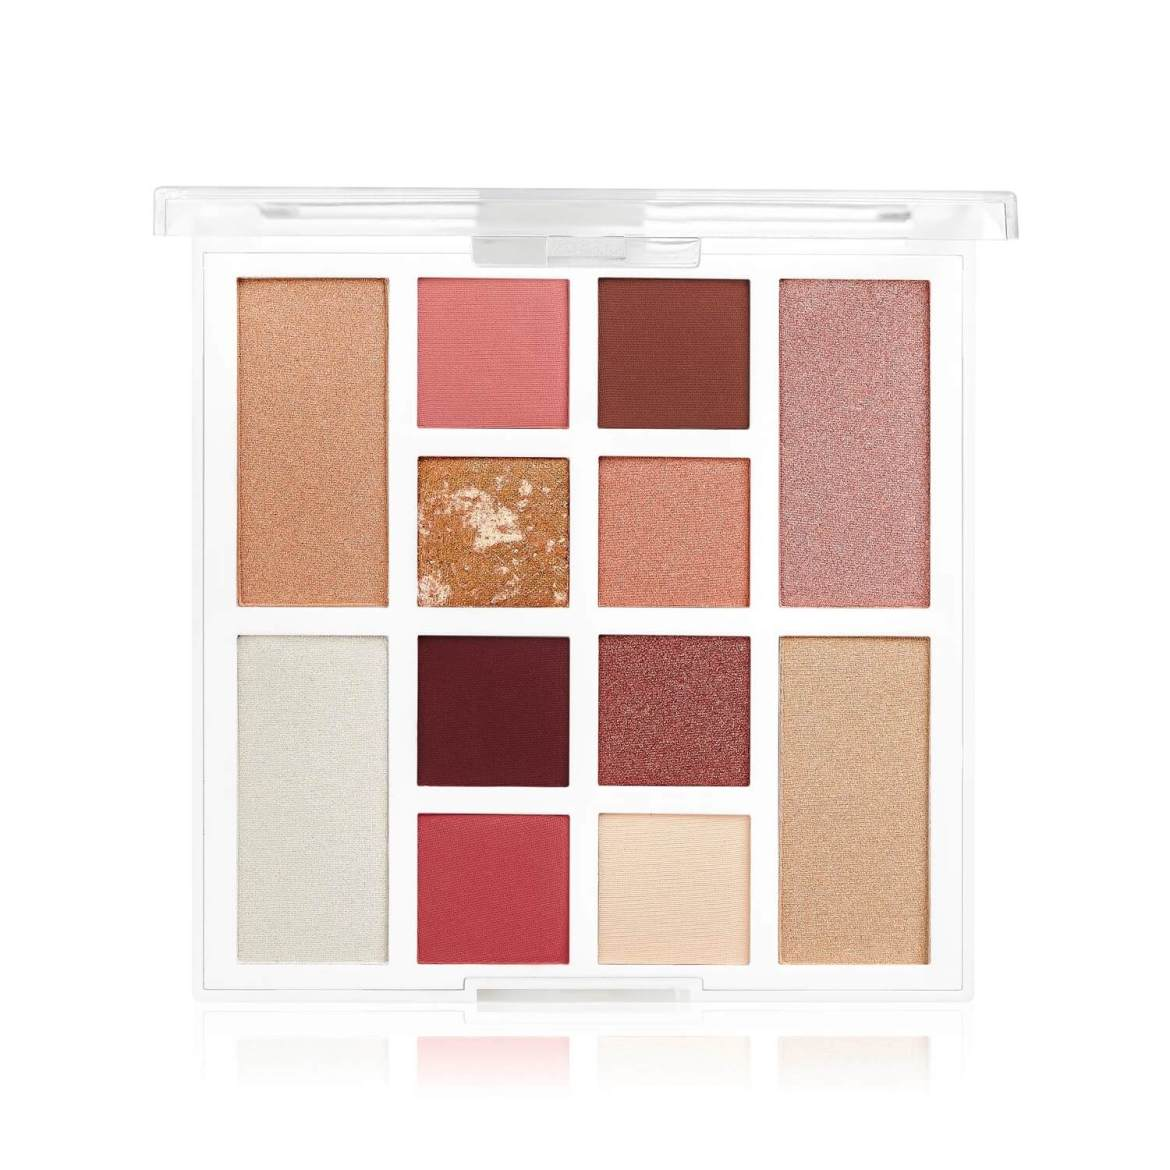 Lottie London Mega Watt Palette 16.8g